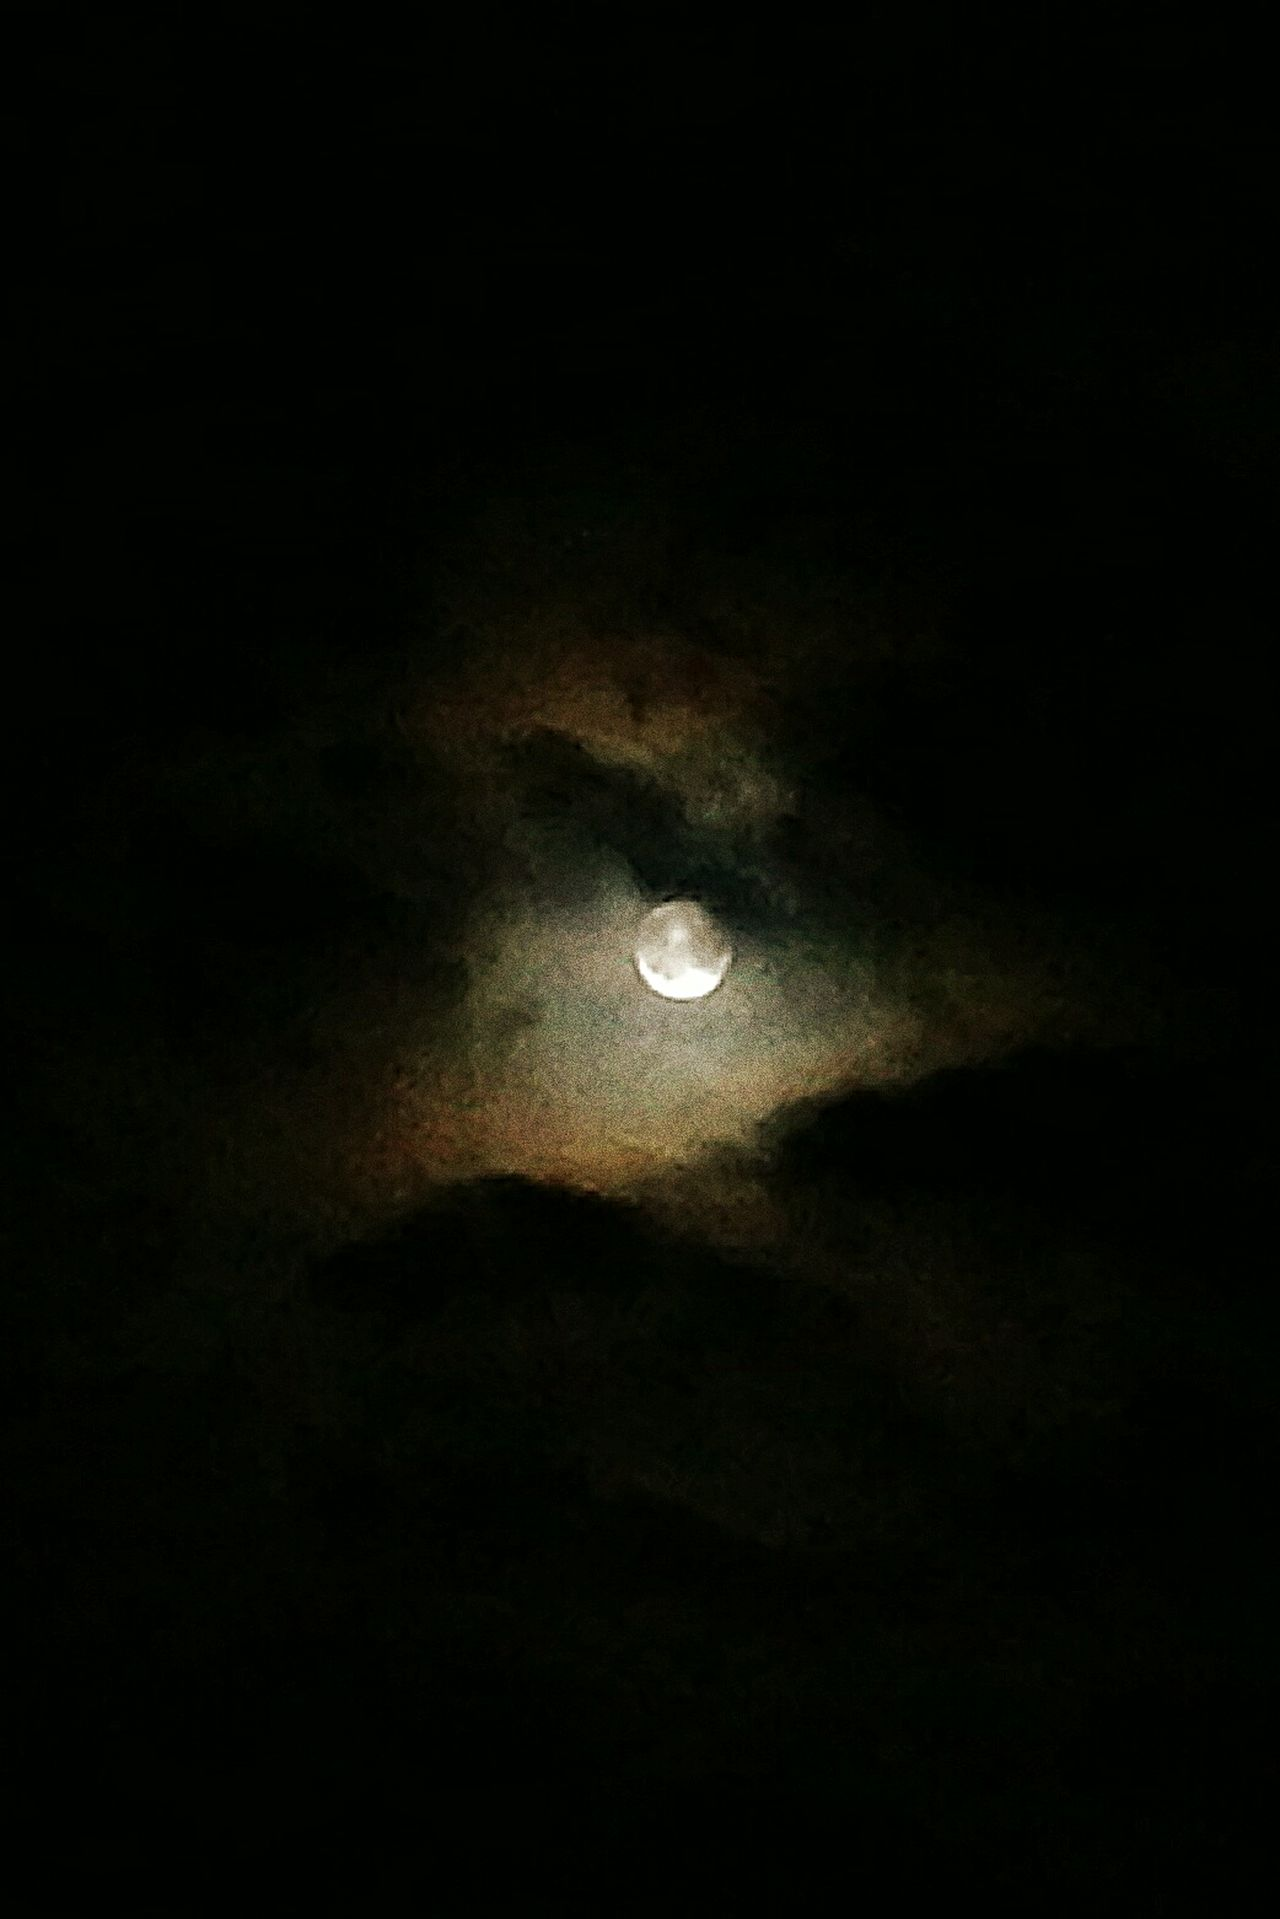 Shrouded Dark Close-up Black Background No People Night Astronomy Space Outdoors Skylight Shadow Shape Illuminated Dark Flybe British Airways Cloud - Sky Supermoon Supermoon 2016 Natural Condition Sky Moon Surface Tranquility Nature Moon